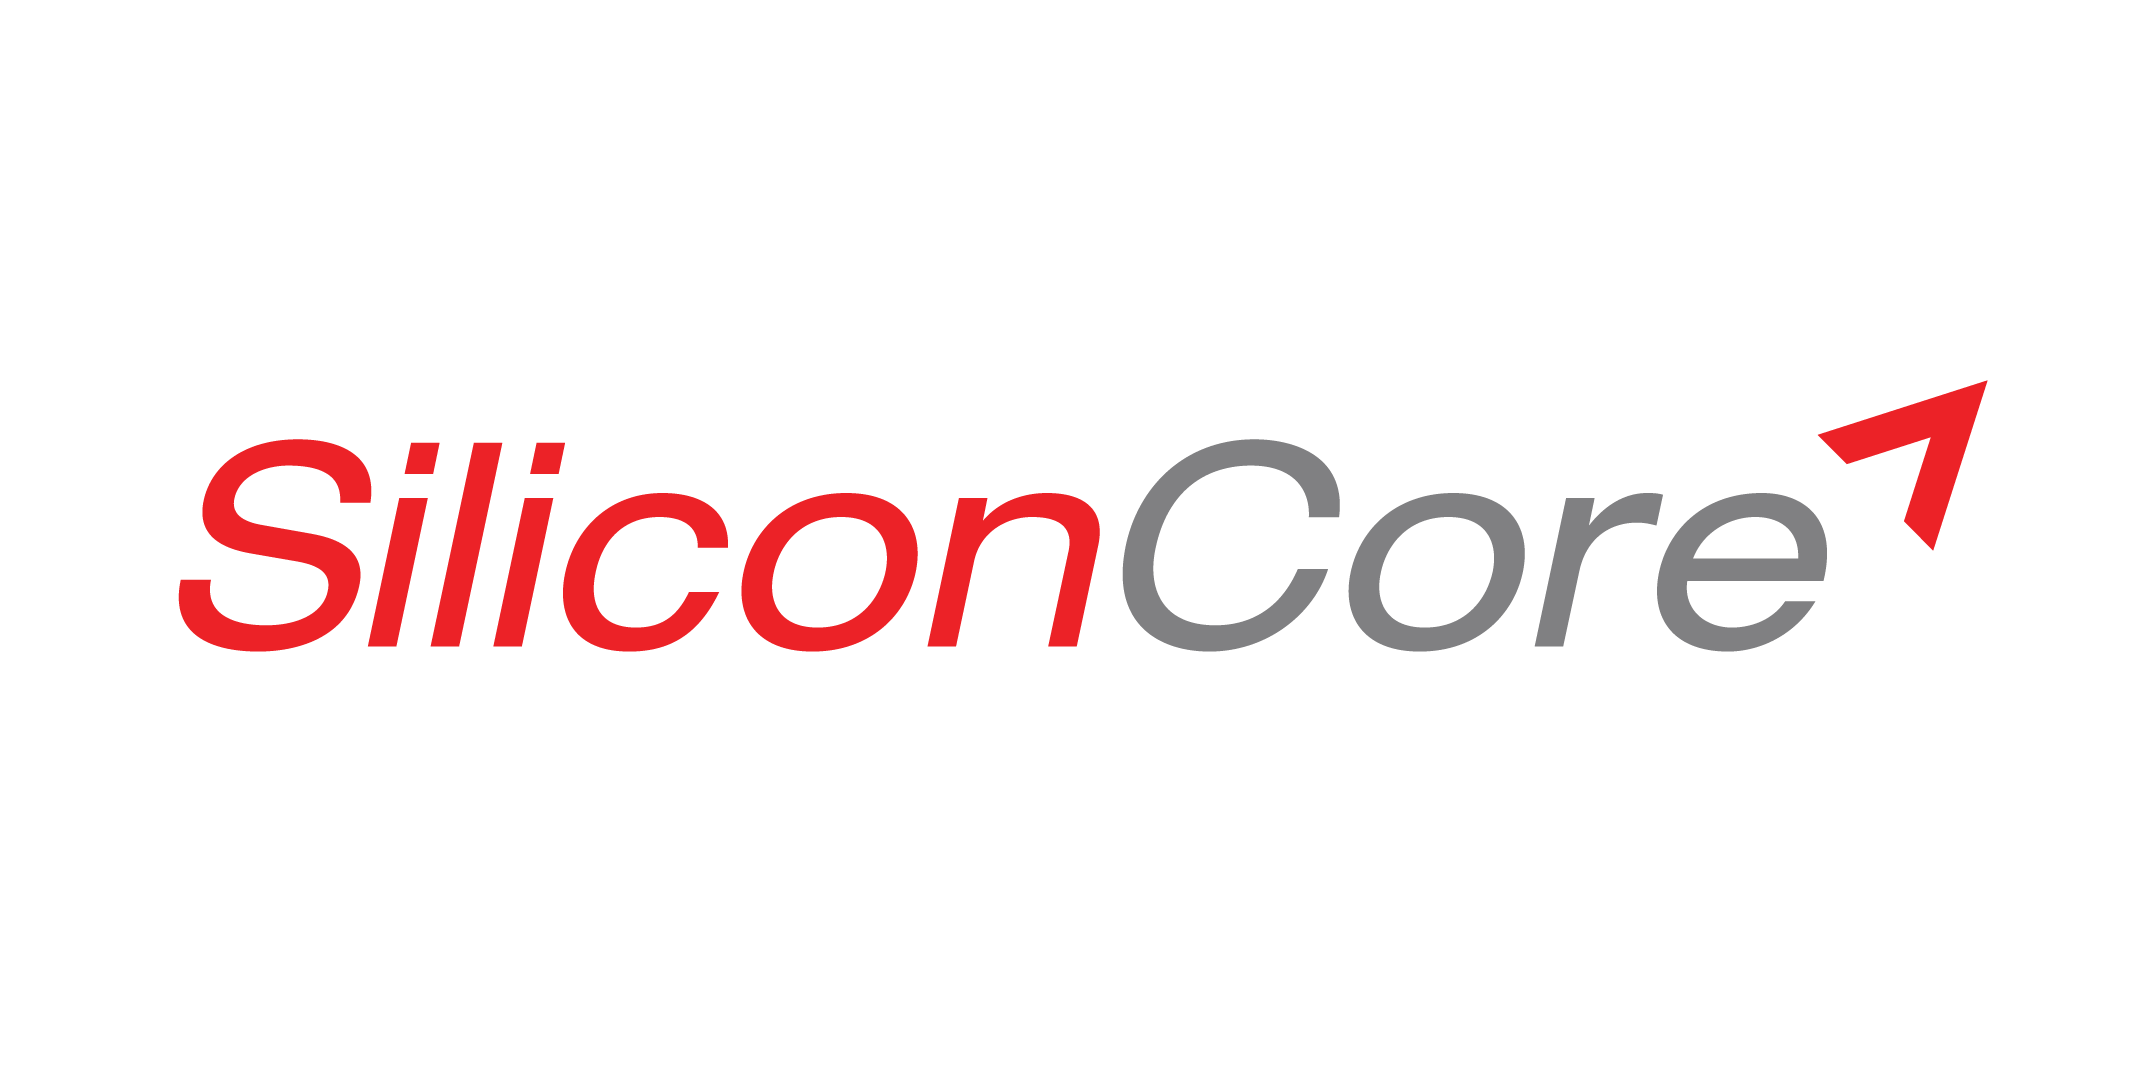 SiliconCoreLogo_Template_256x512-01.png